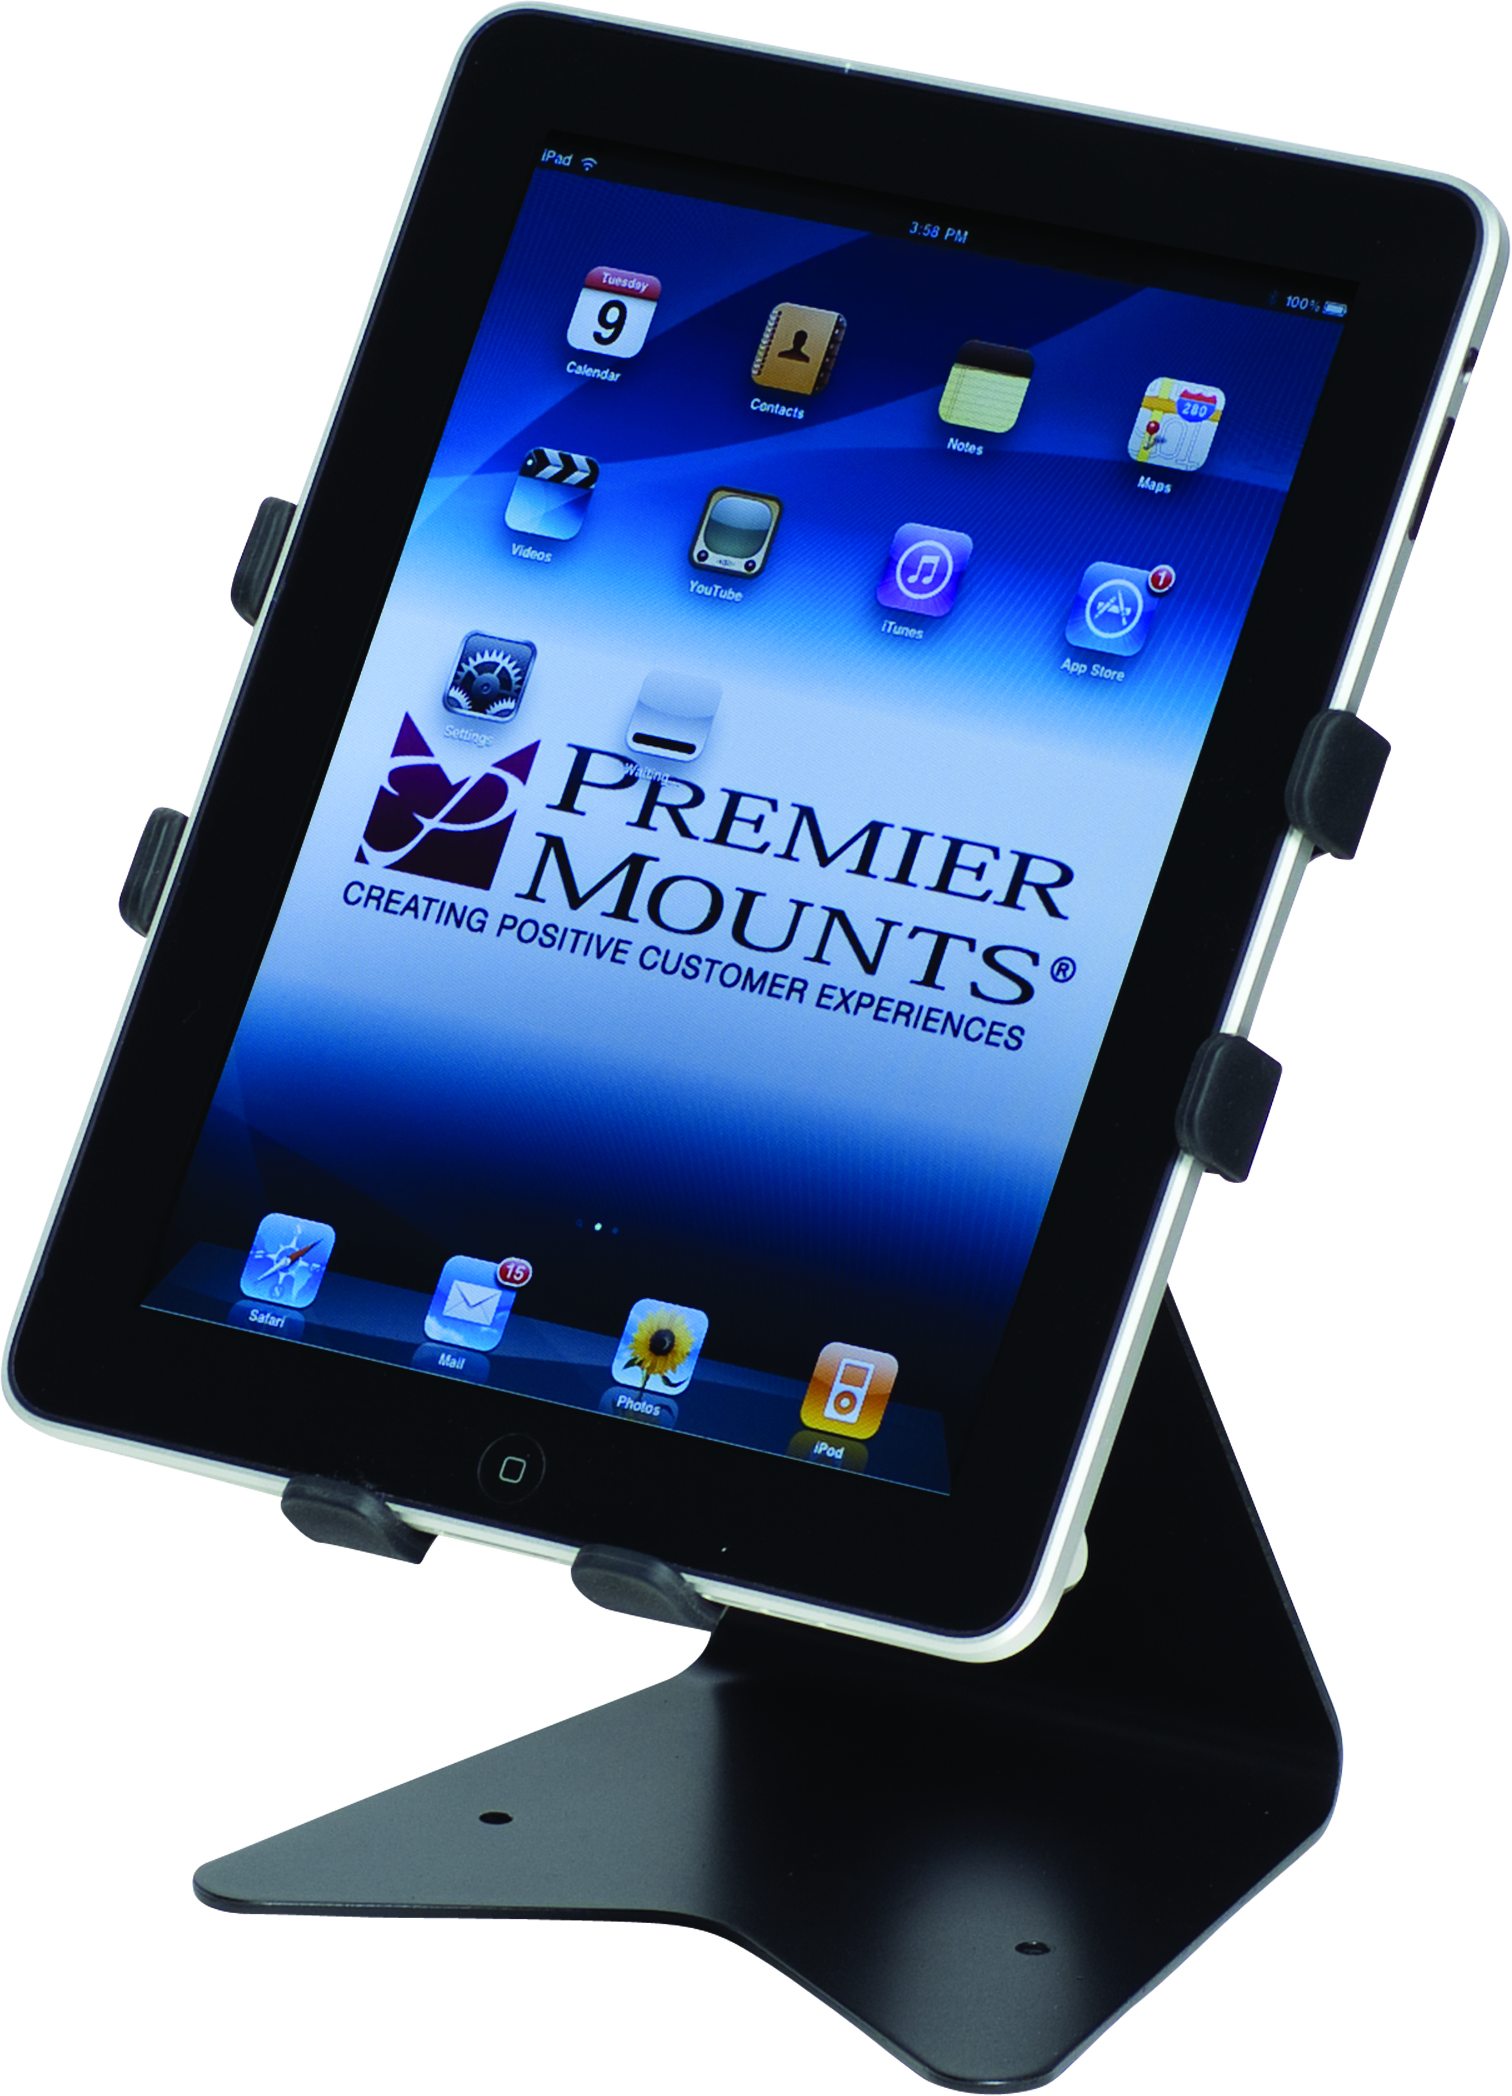 Premier+Mounts+Releases+IPM-300+Flexible+iPad+Mount